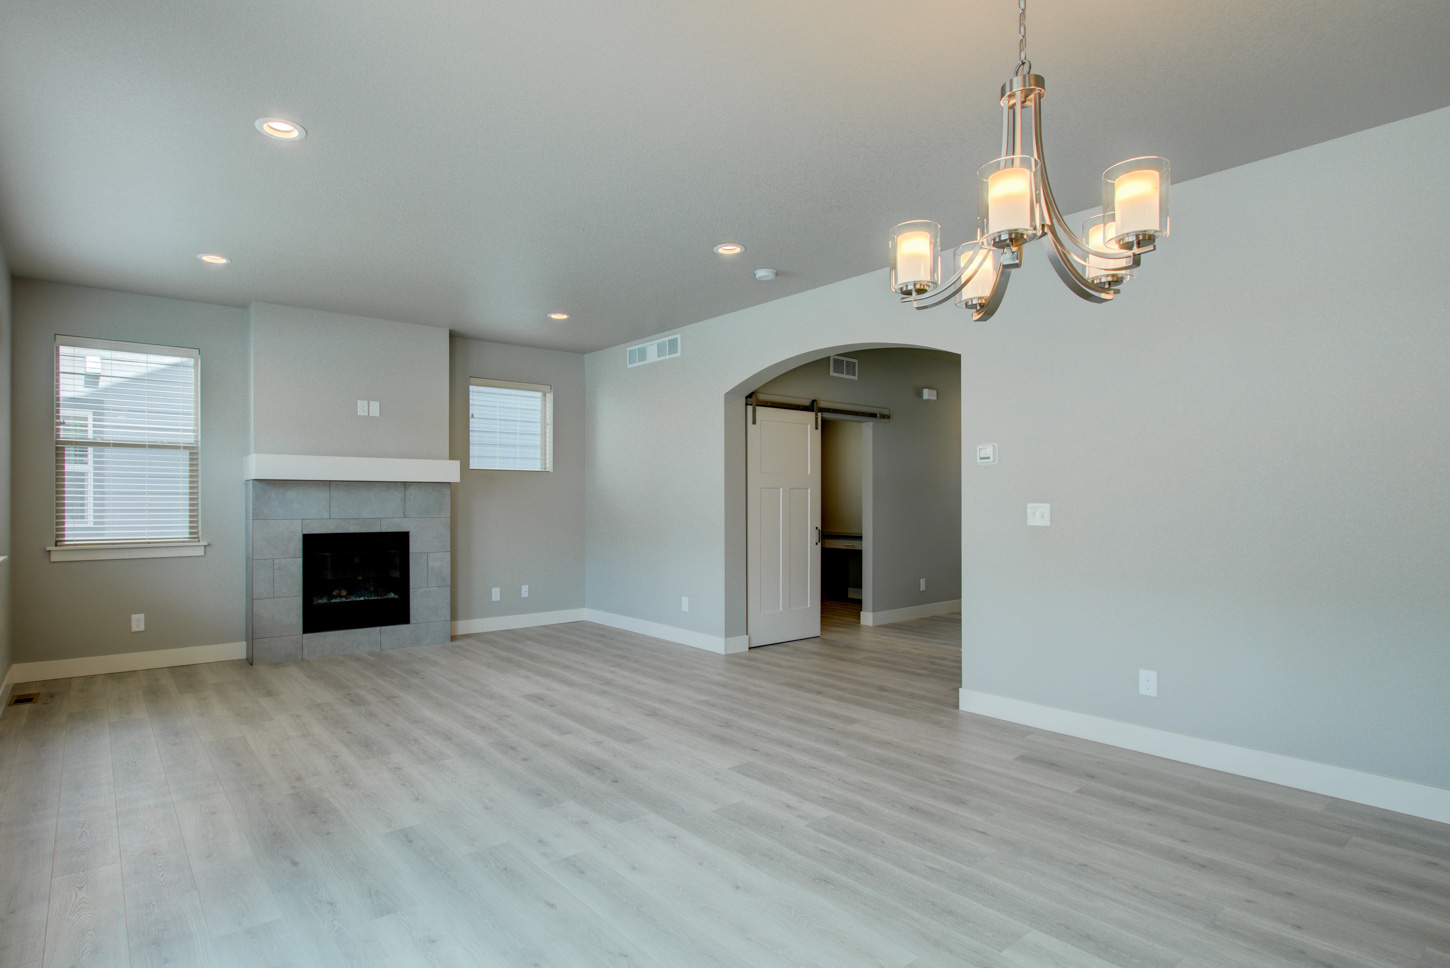 16_115_20anders_20ct_loveland_great_20room_new_20home_20builder